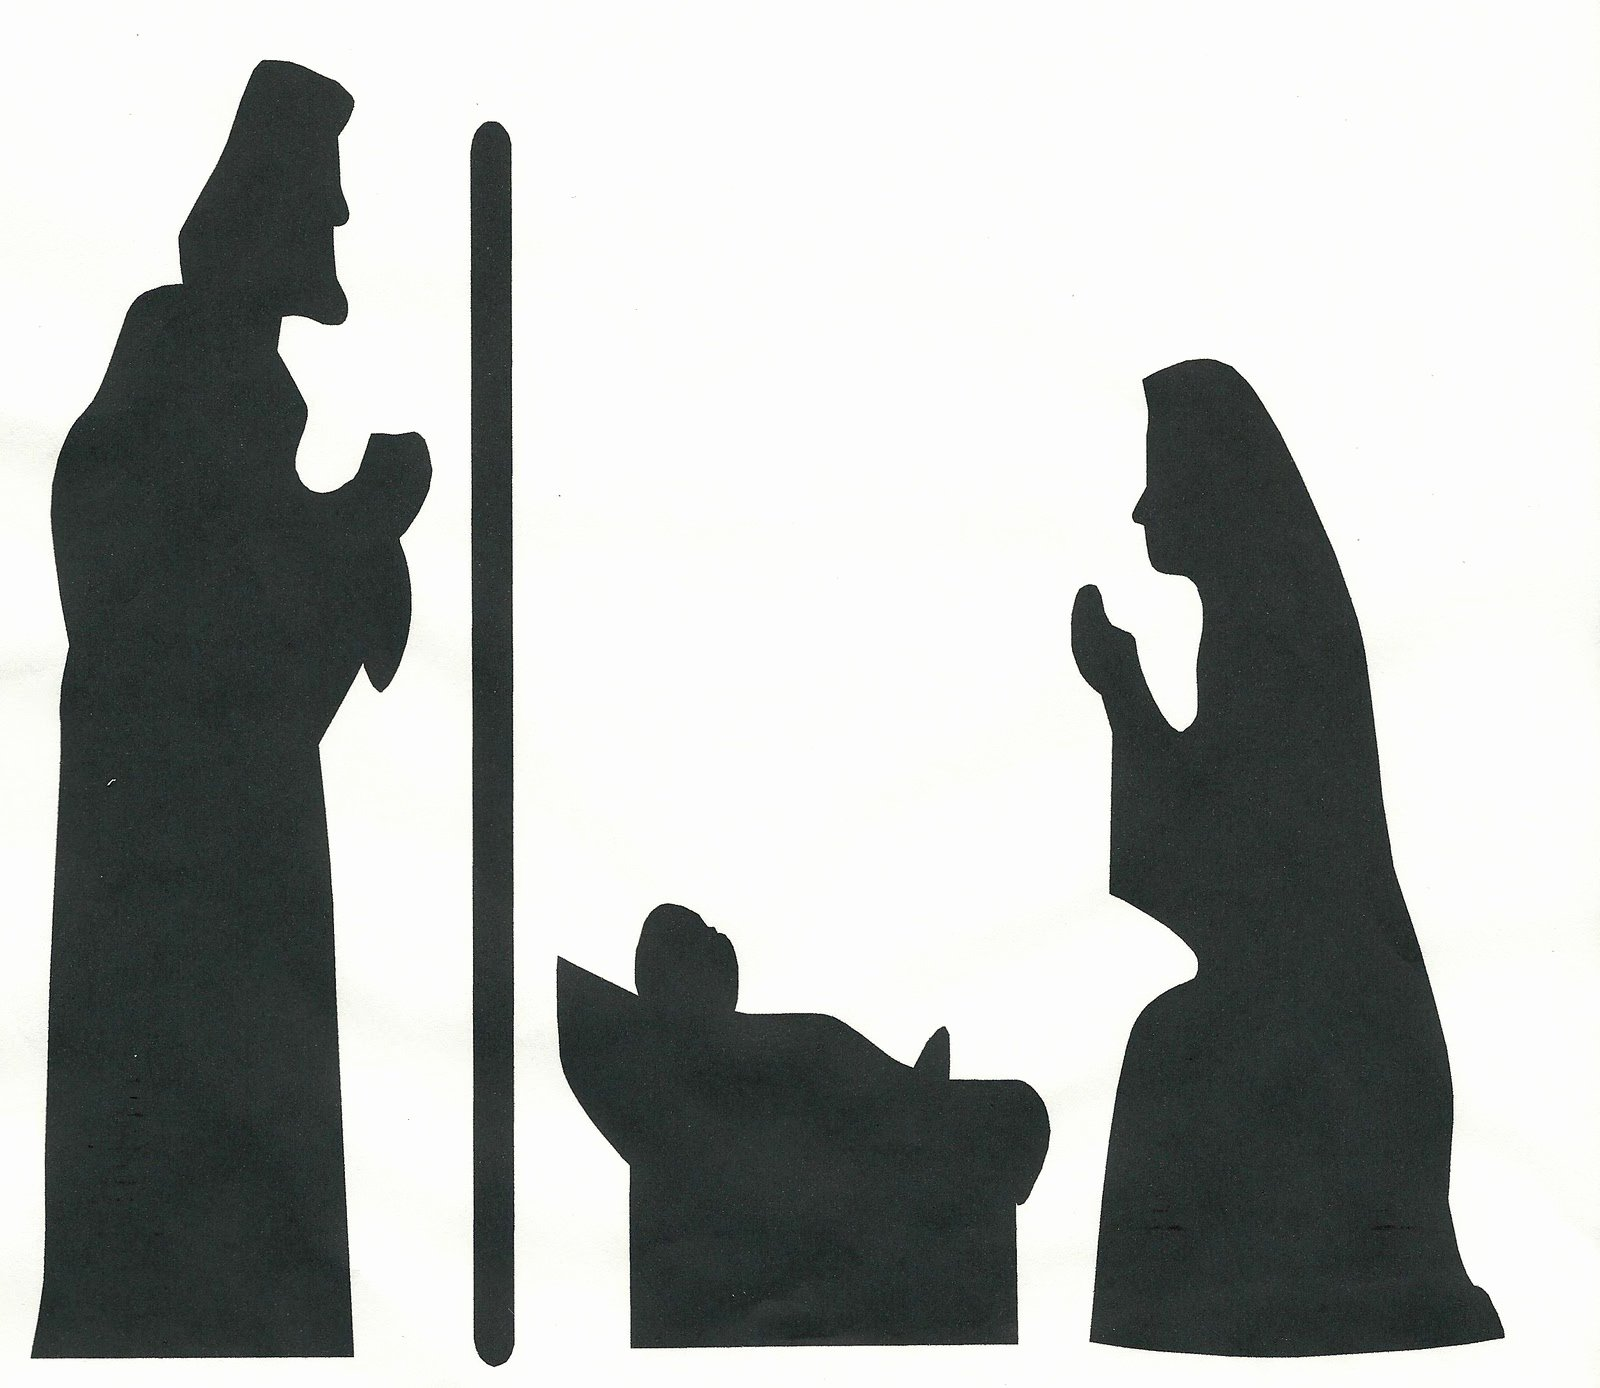 Nativity Scene Silhouette Printable Unique Whitehall Ward R S News November 2010